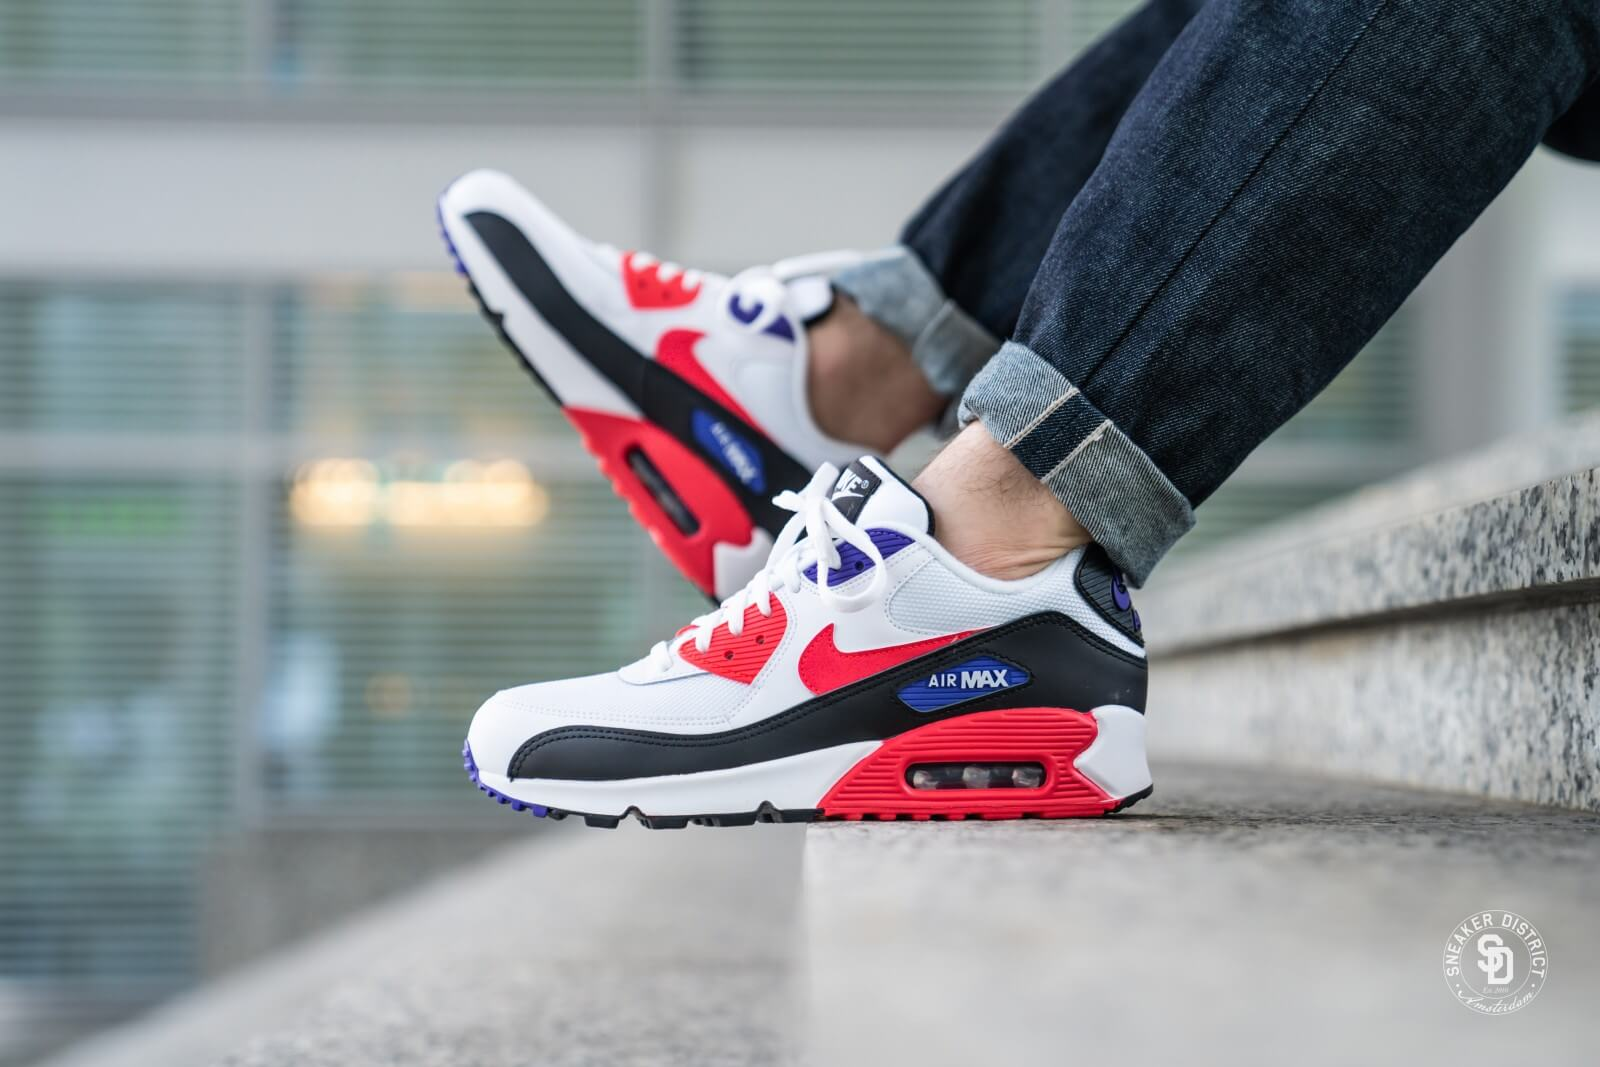 Nike Air Max 90 Essential WhiteRed Orbit Psychic Purple AJ1285 106